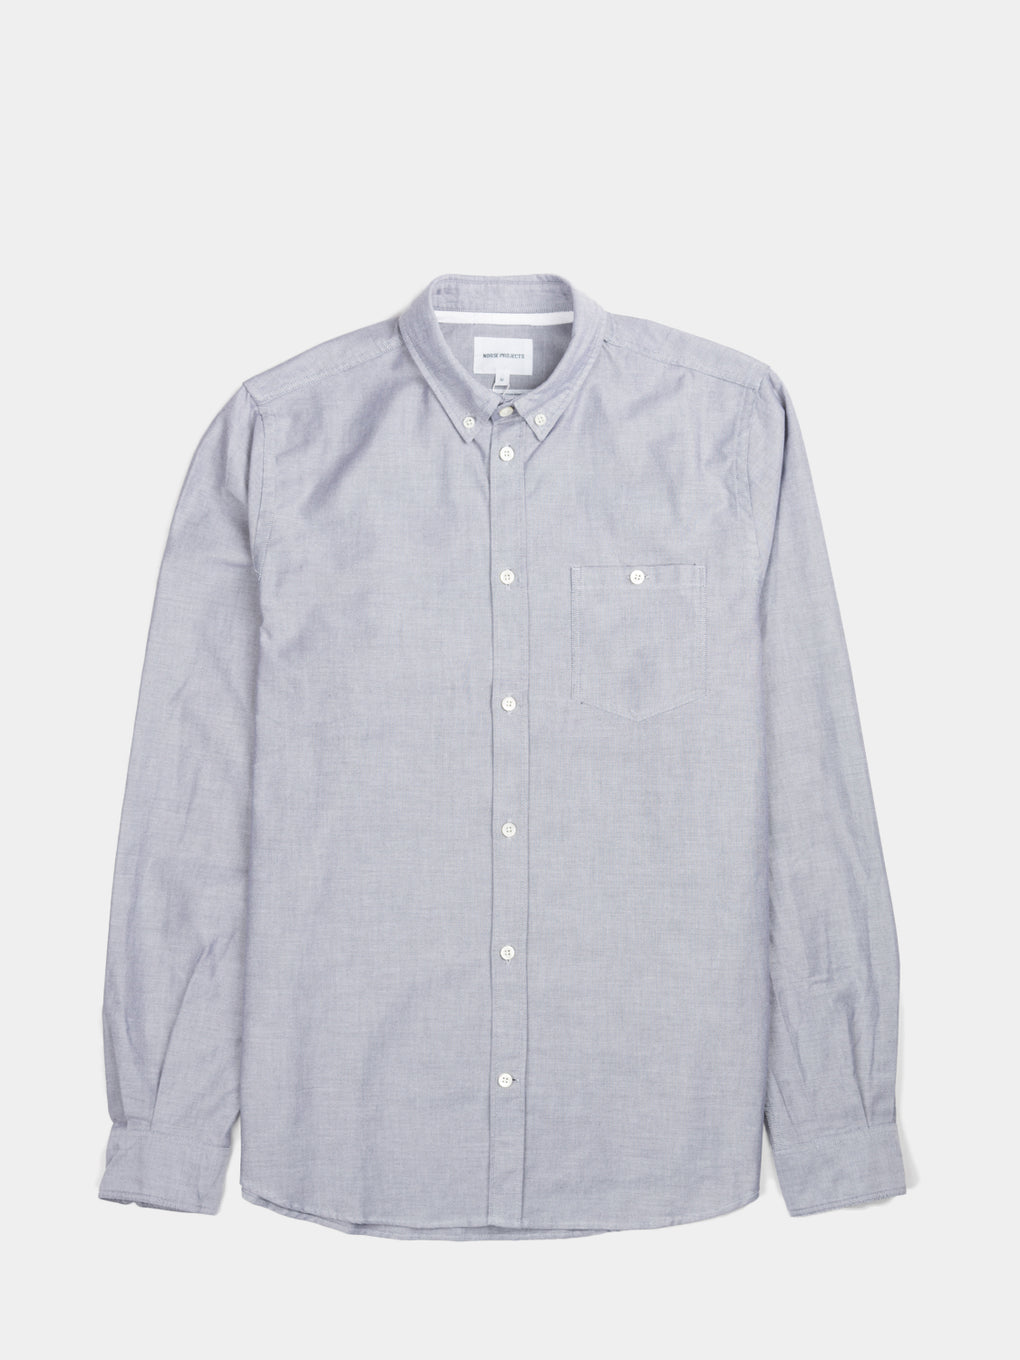 mens casual oxford shirt - Anton Oxford - Grey - Norse Projects- Understudy